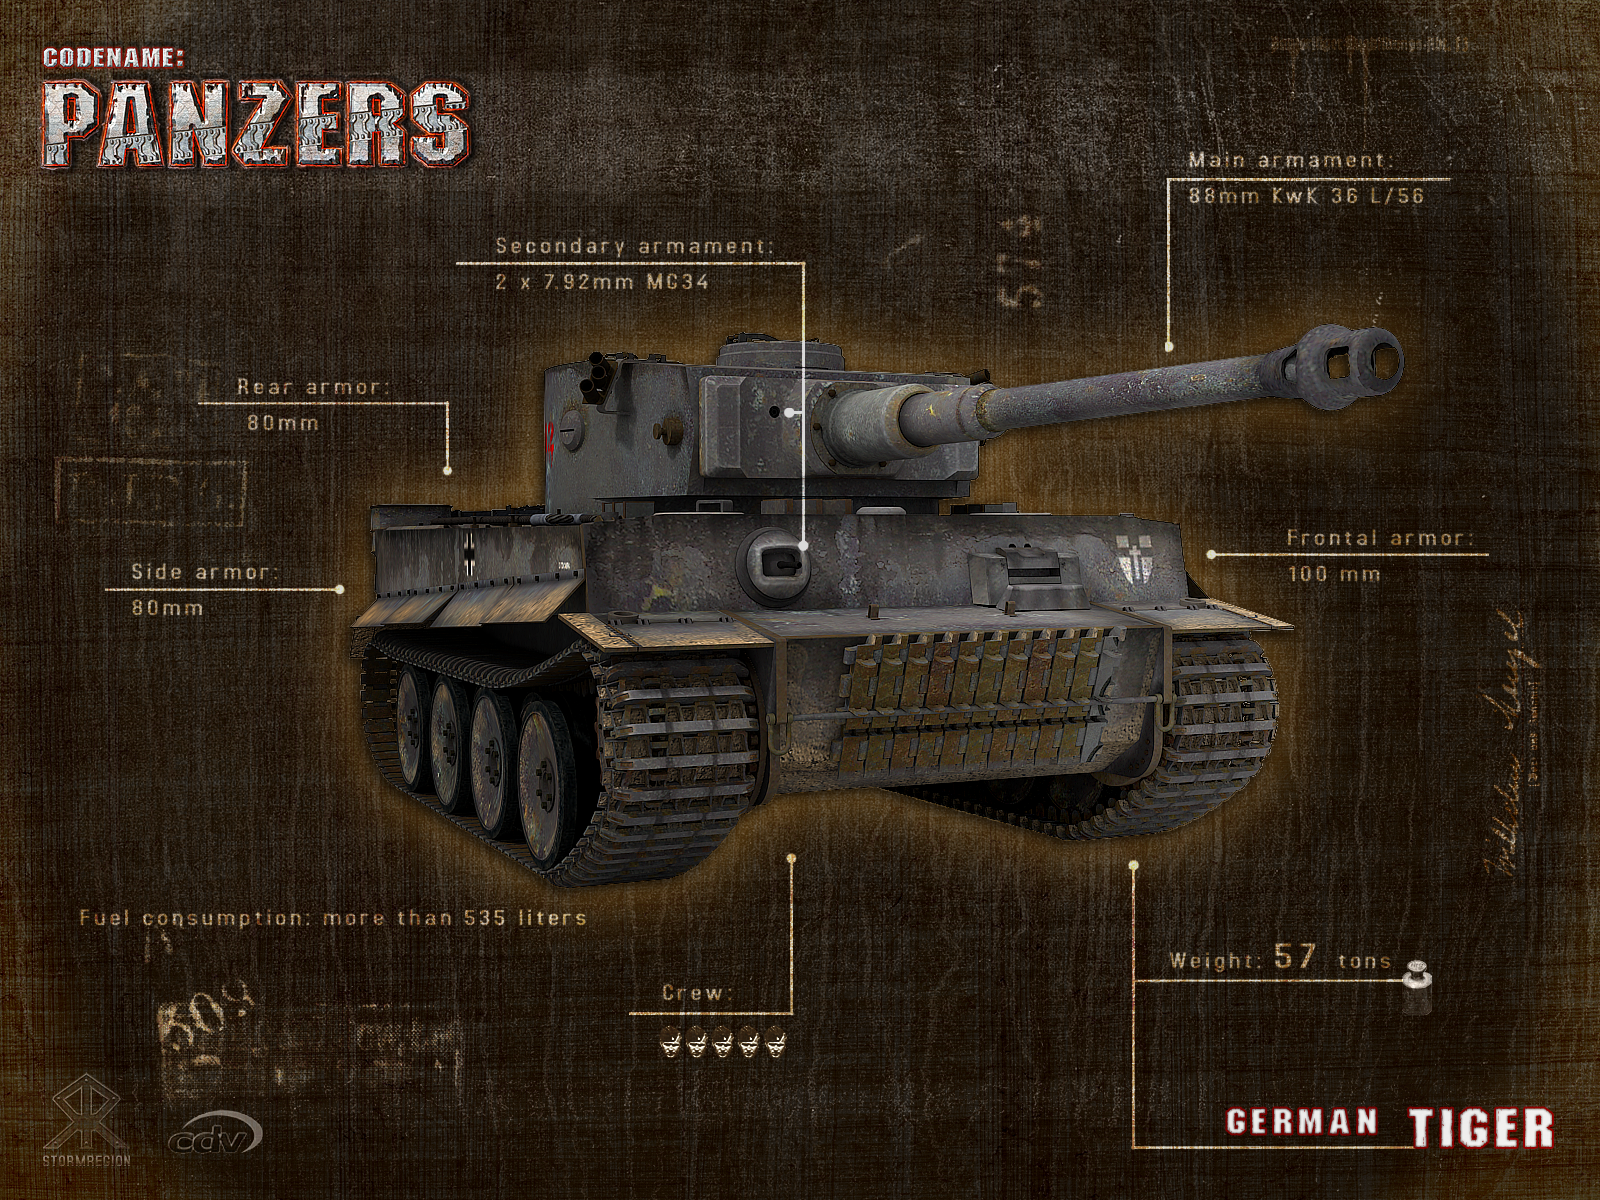 Free Download Feed Report Content Codename Panzers Wallpaper